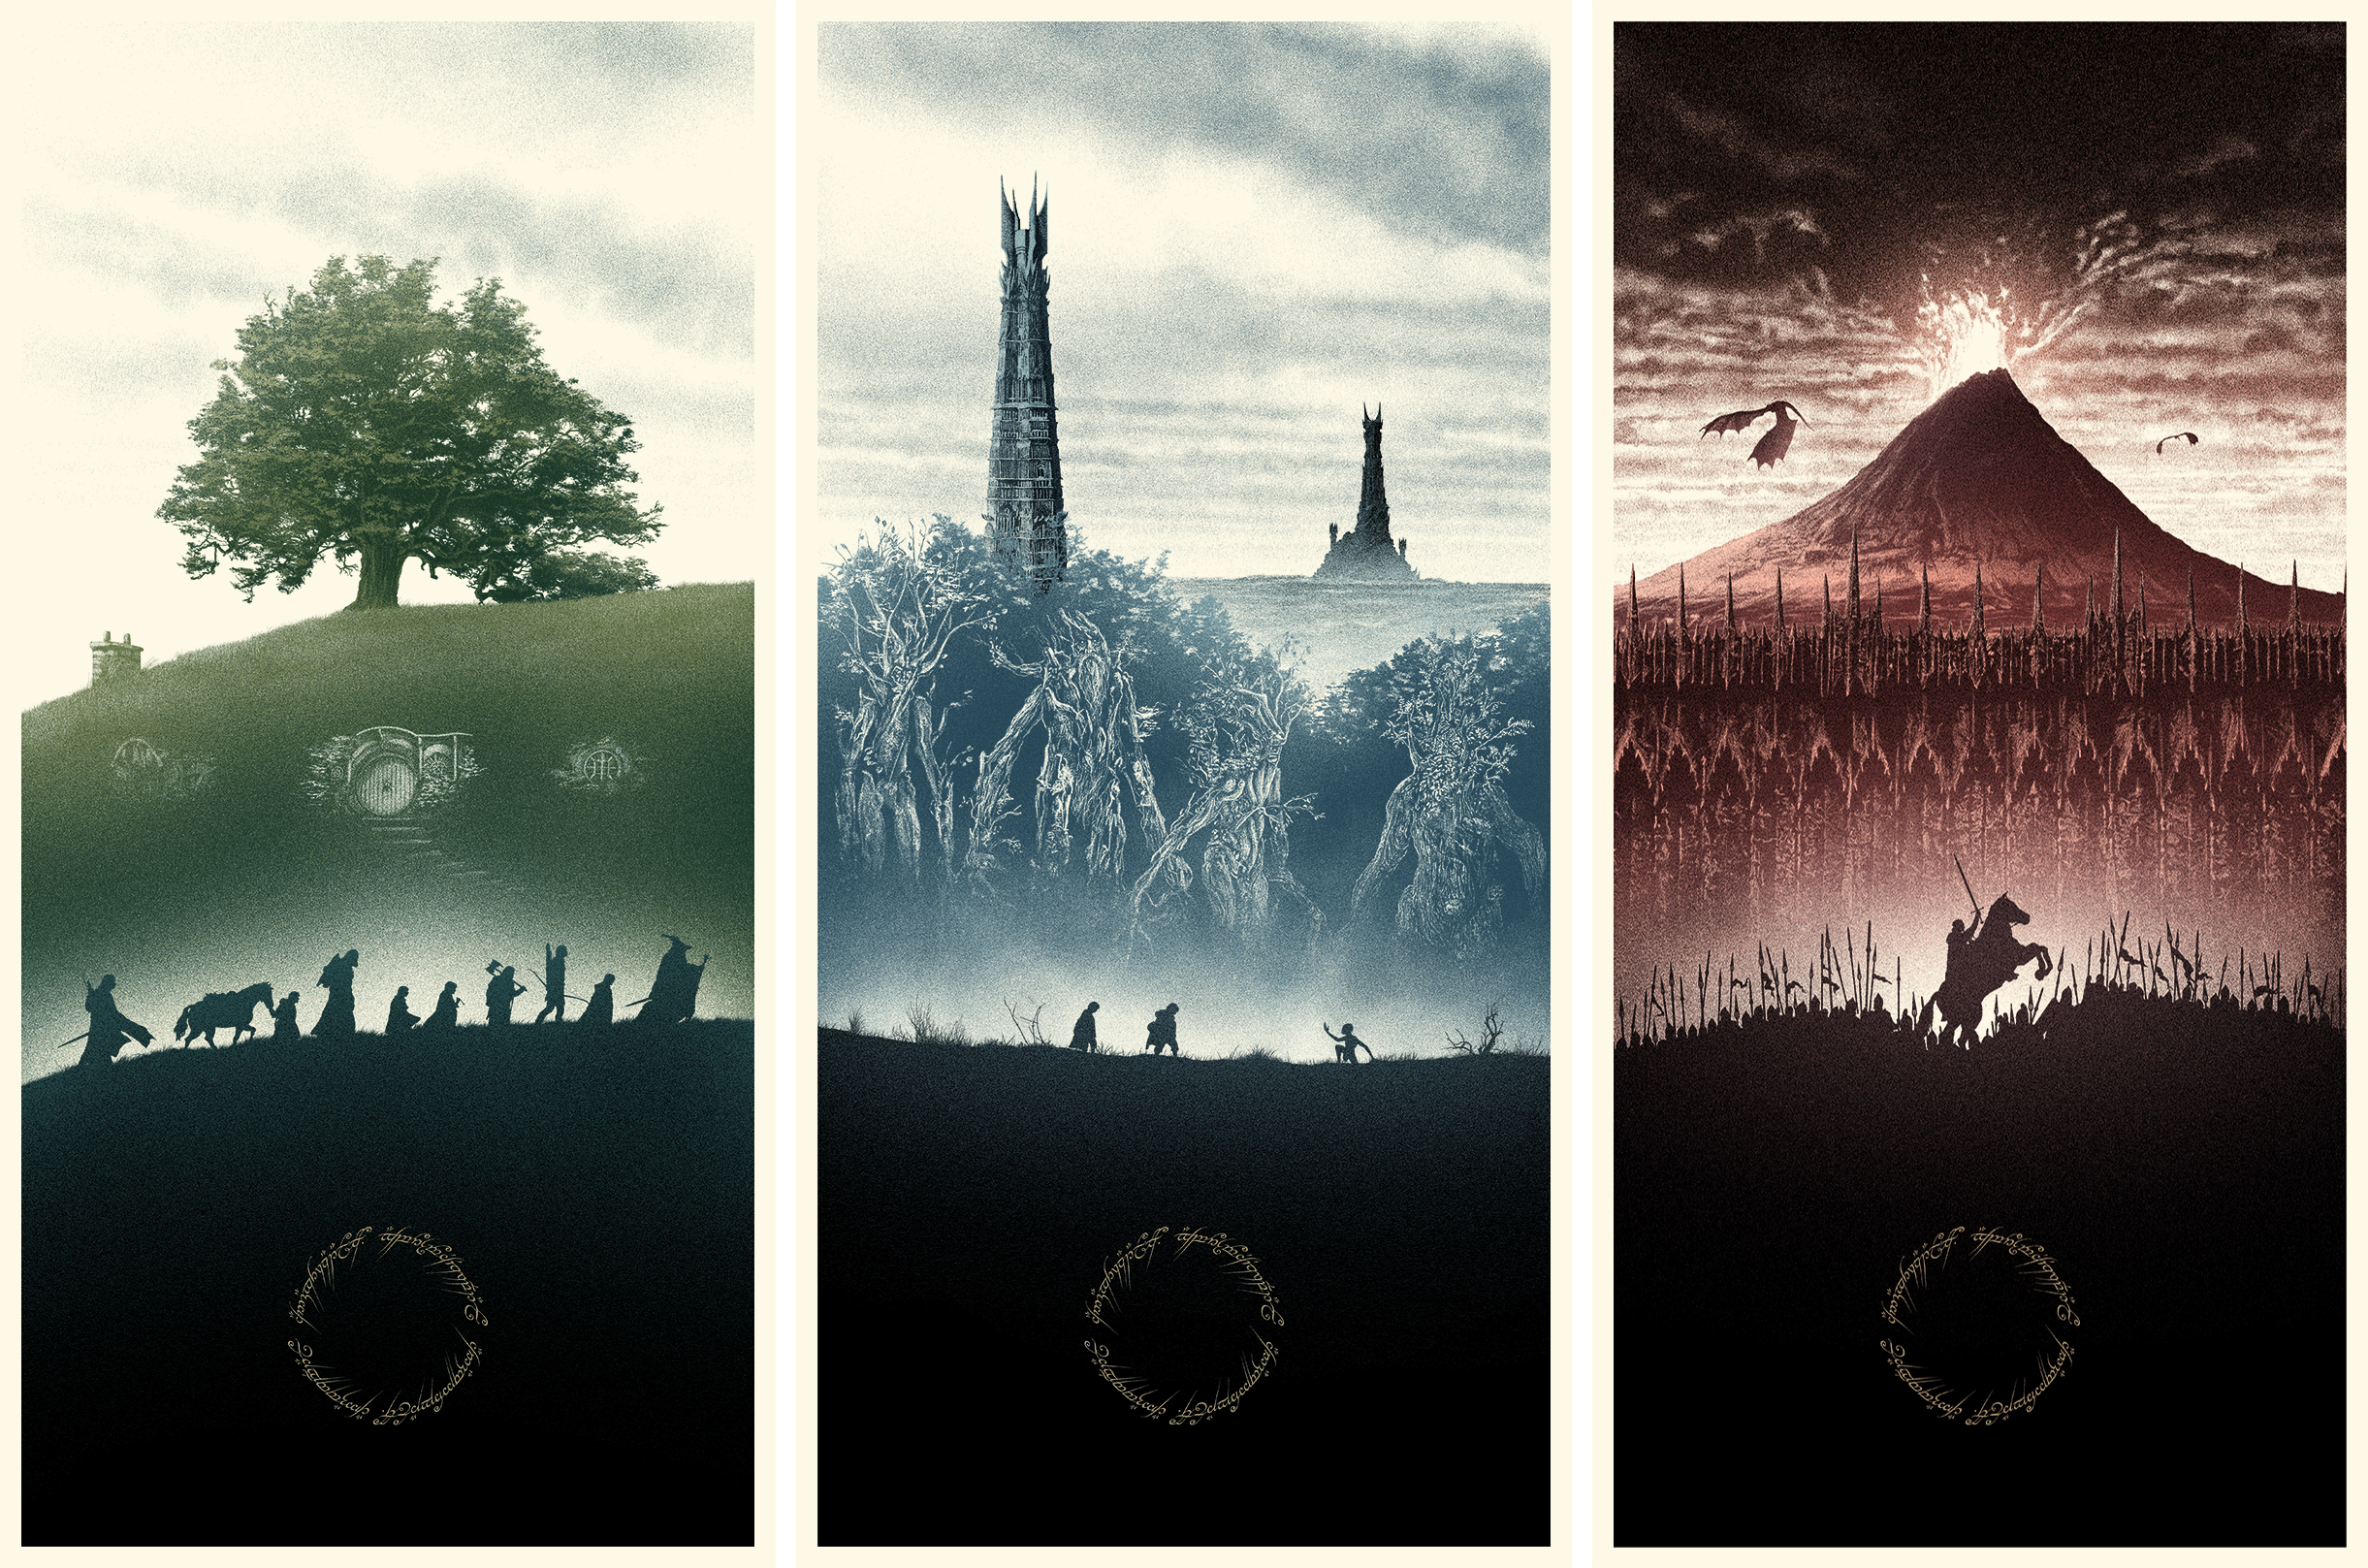 game of thrones full map poster with Lord Of The Rings on Game Of Thrones Character Map besides Best 3d Wallpapers besides Game Of Throne Maps besides Sw  Fever together with 40 Hd Gold Wallpaper Backgrounds For Free Desktop Download.